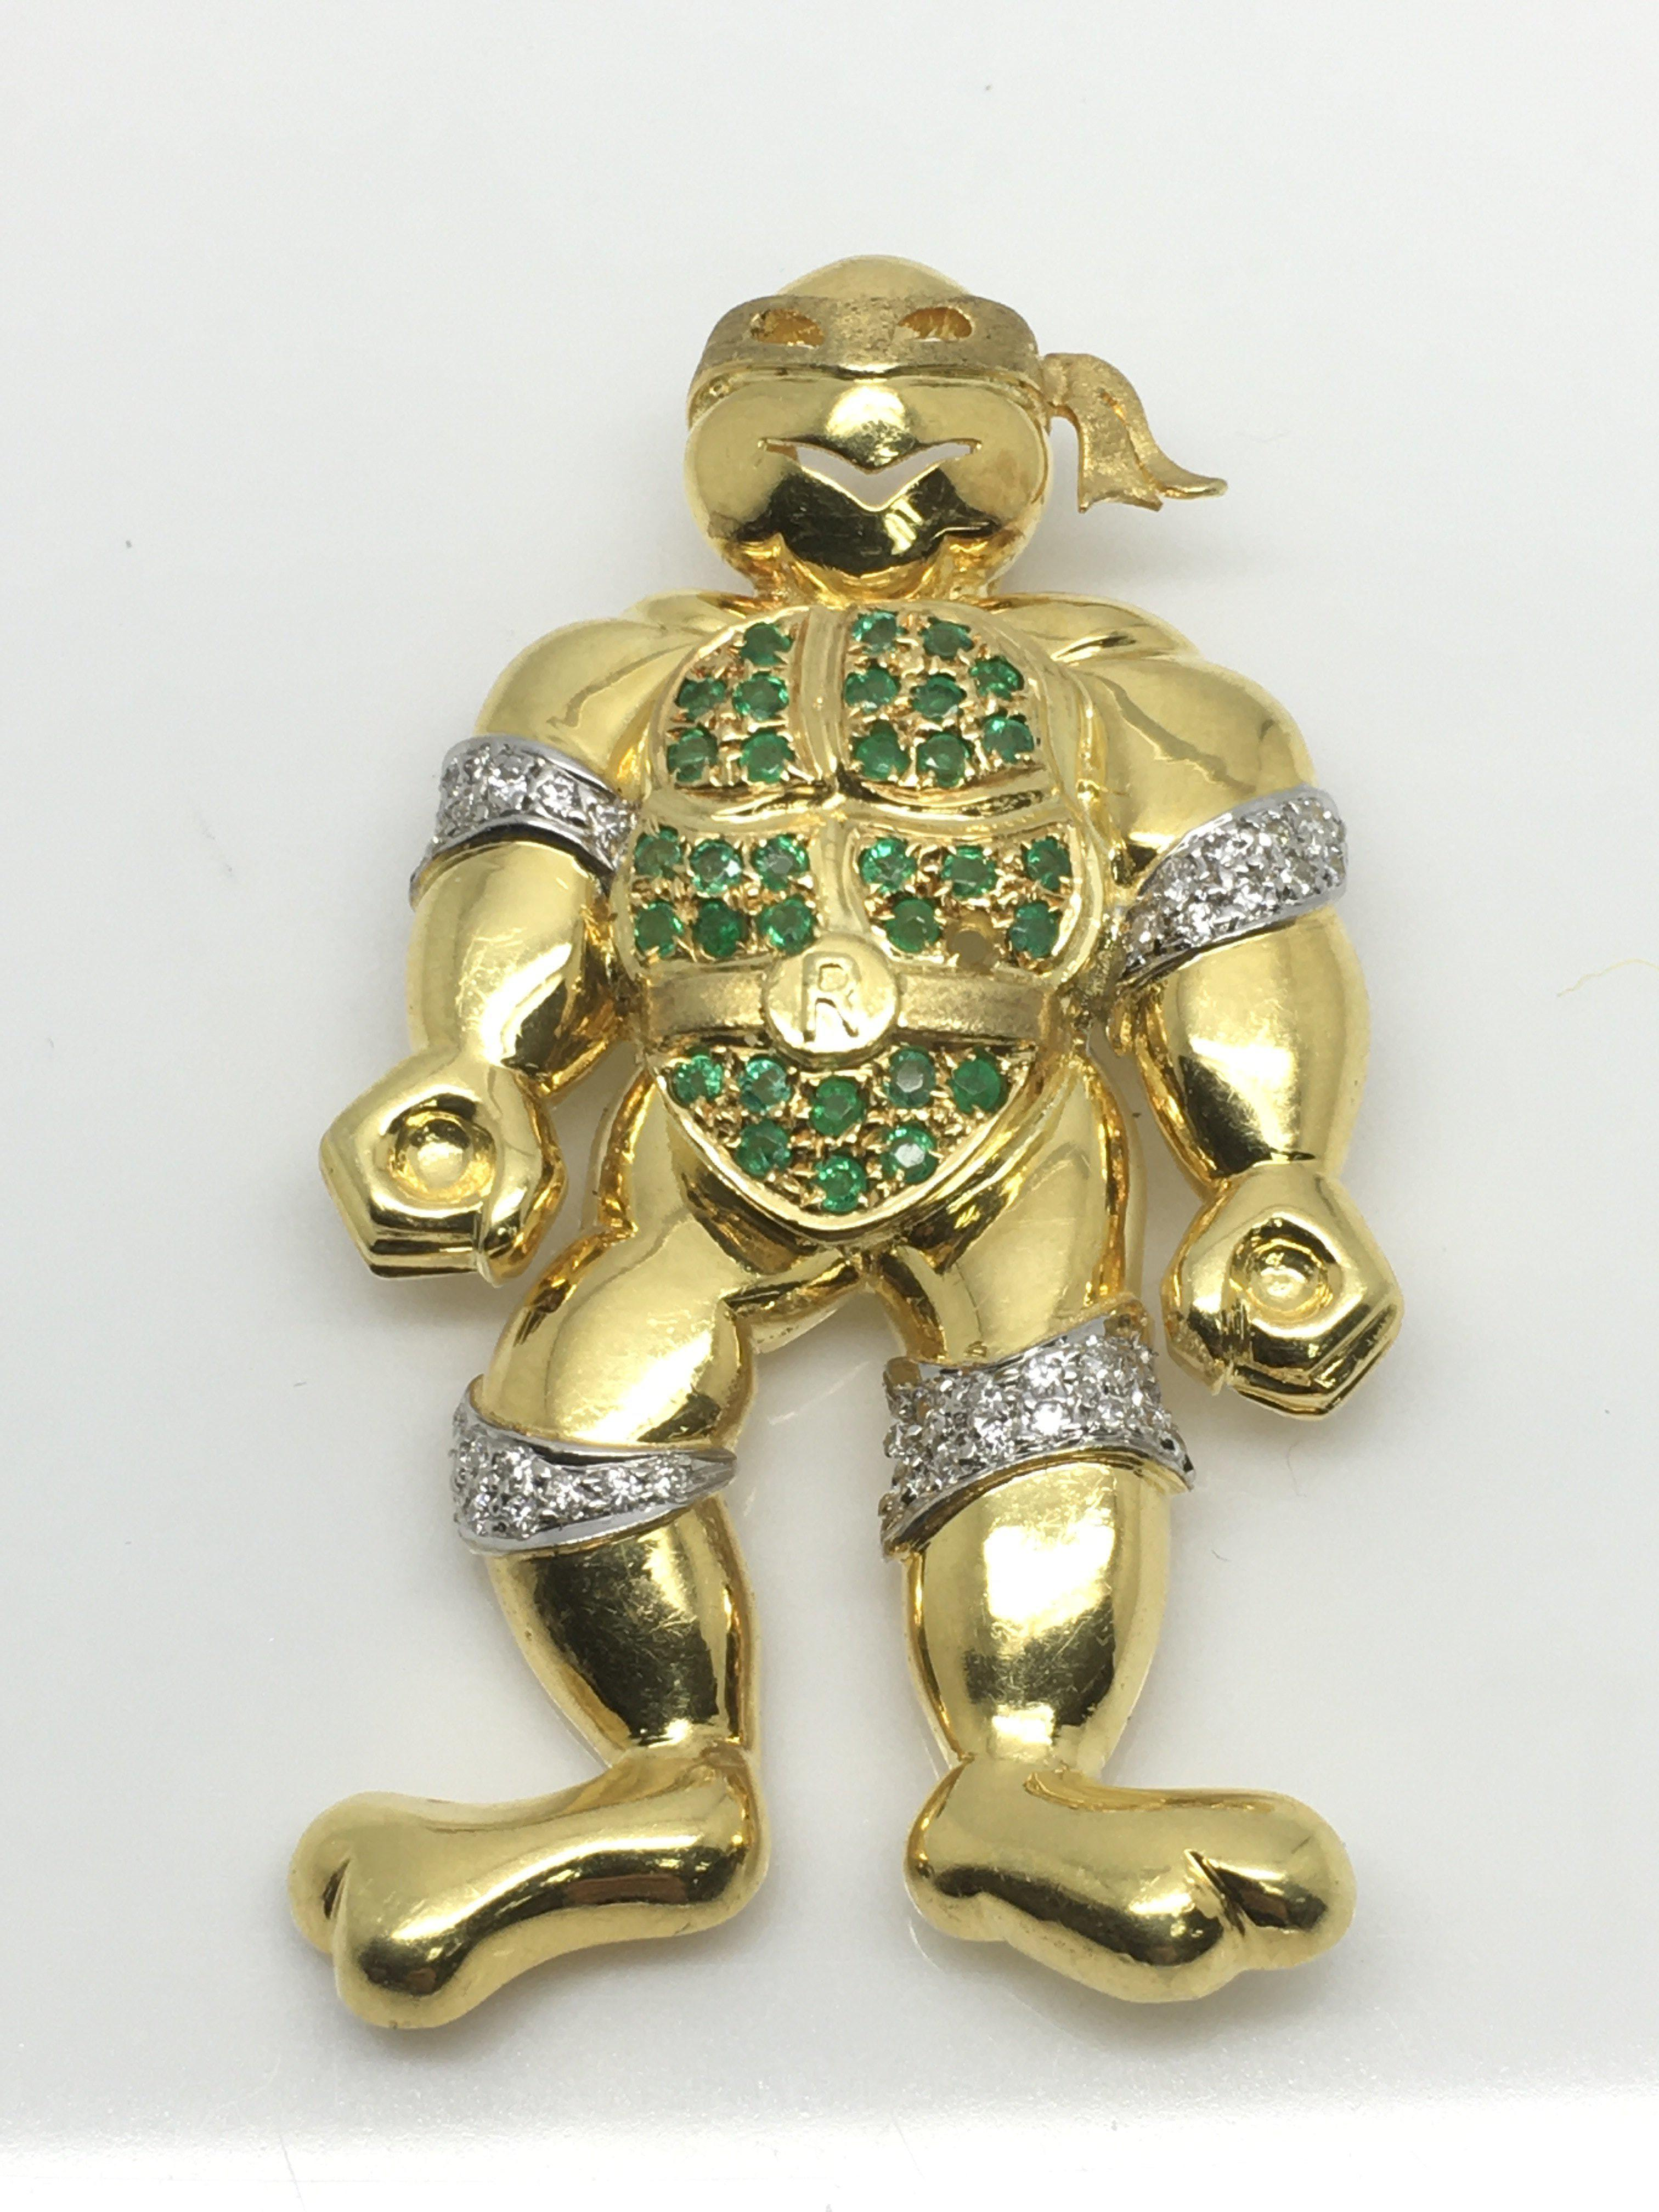 Lot 5 - An 18ct gold brooch in the form of a 'ninja turtle